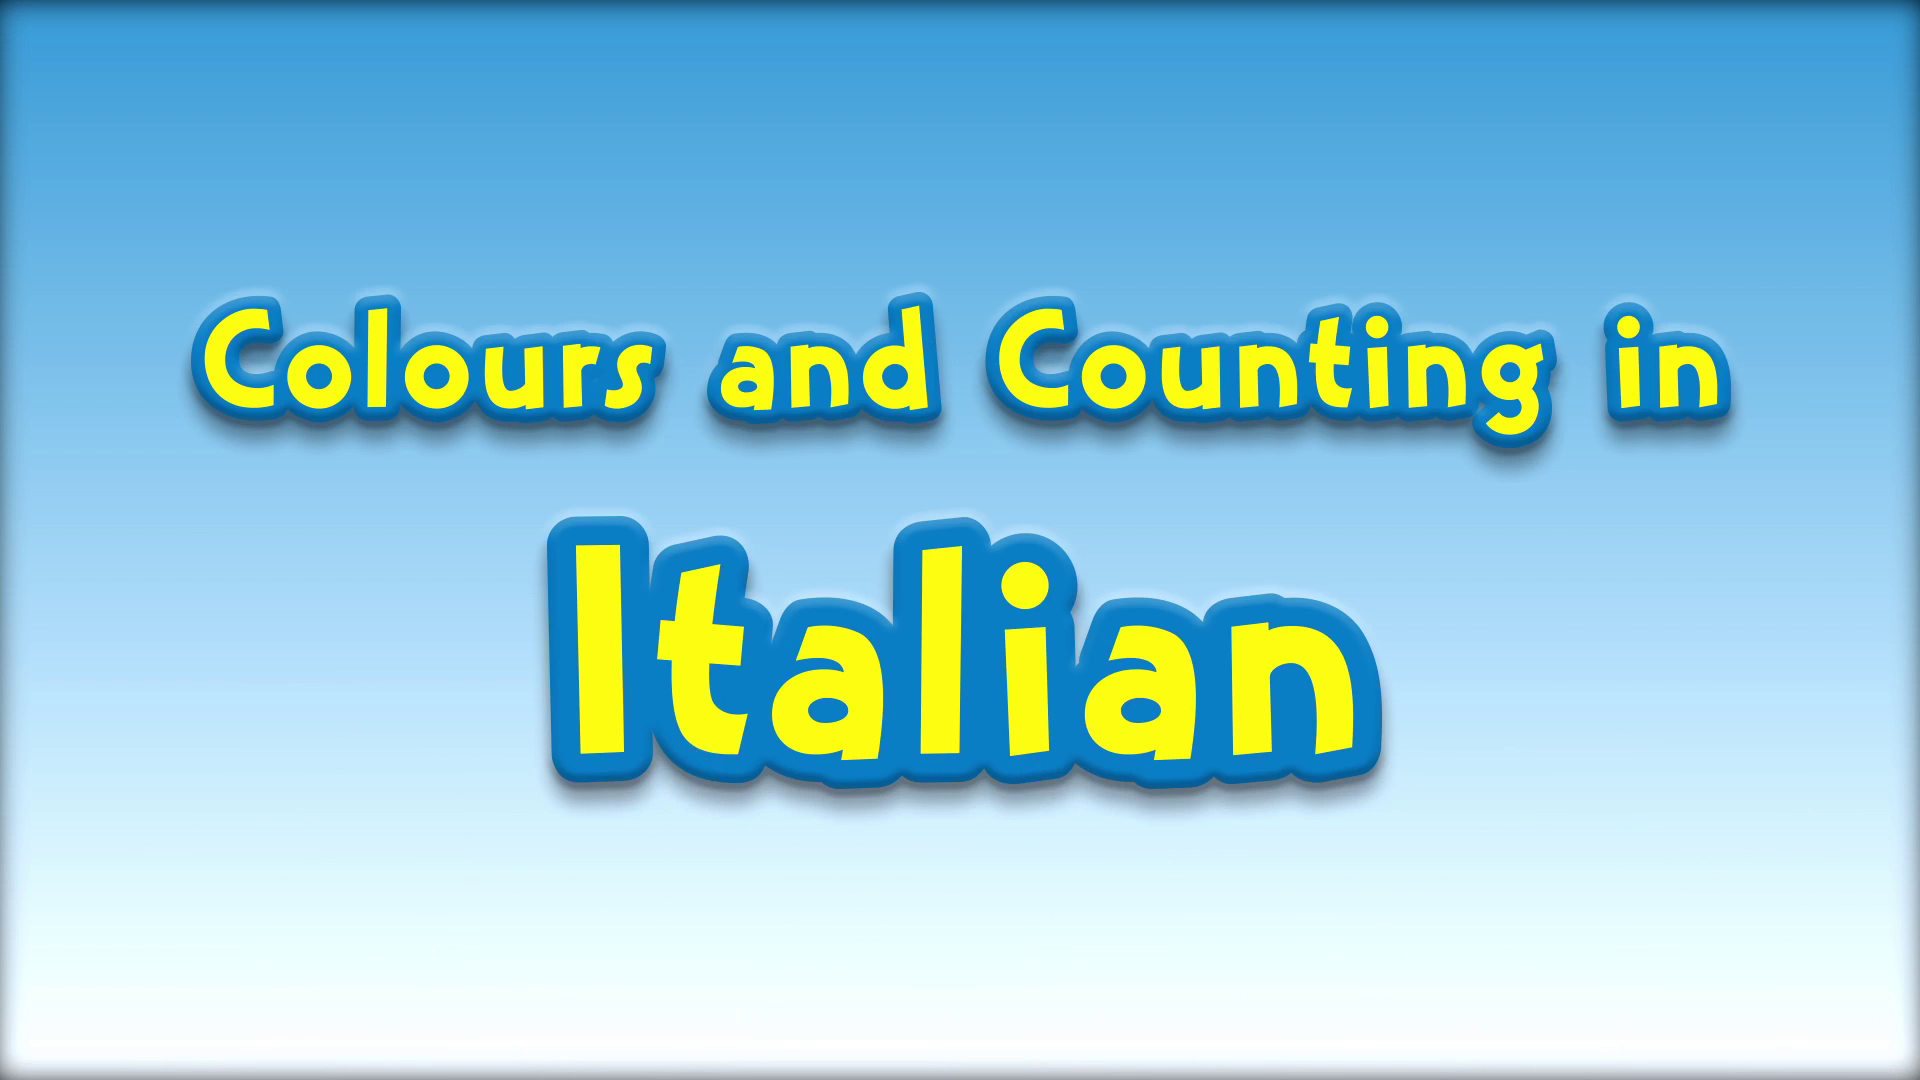 Colours and Counting in Italian